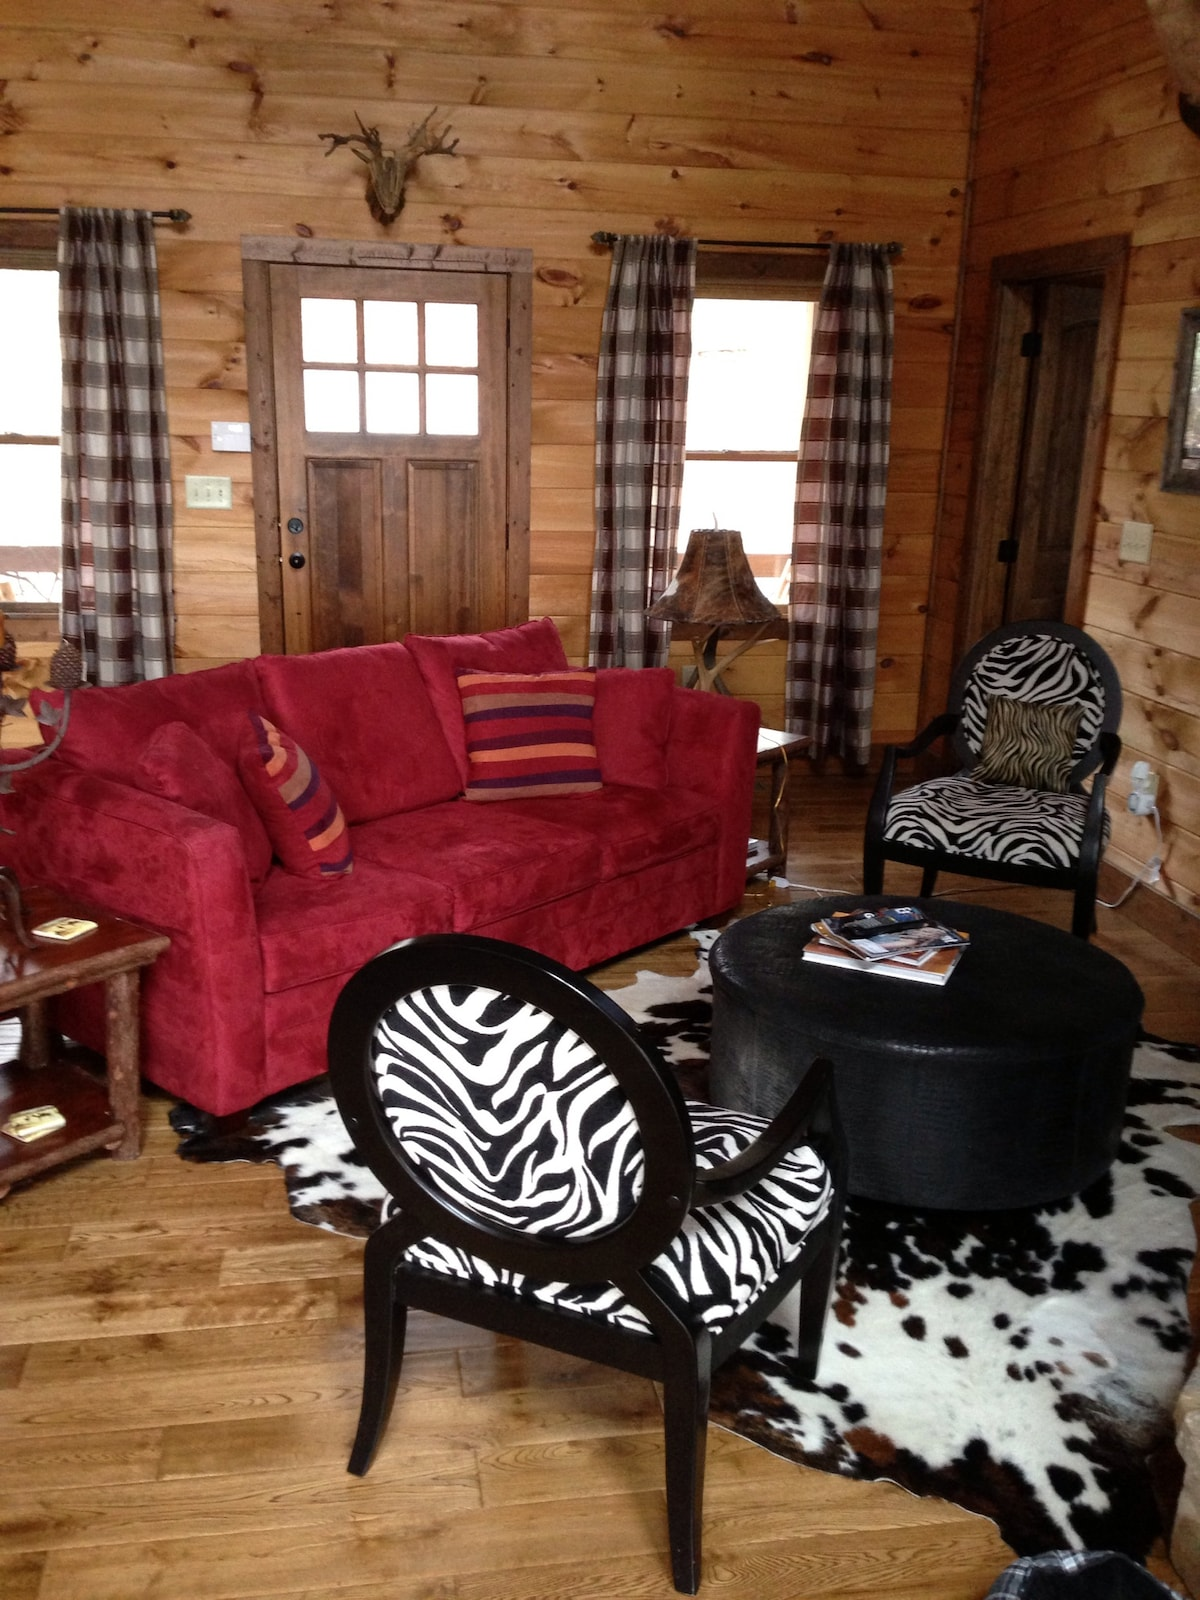 Upscale cabin 2 BDRM, mountain view